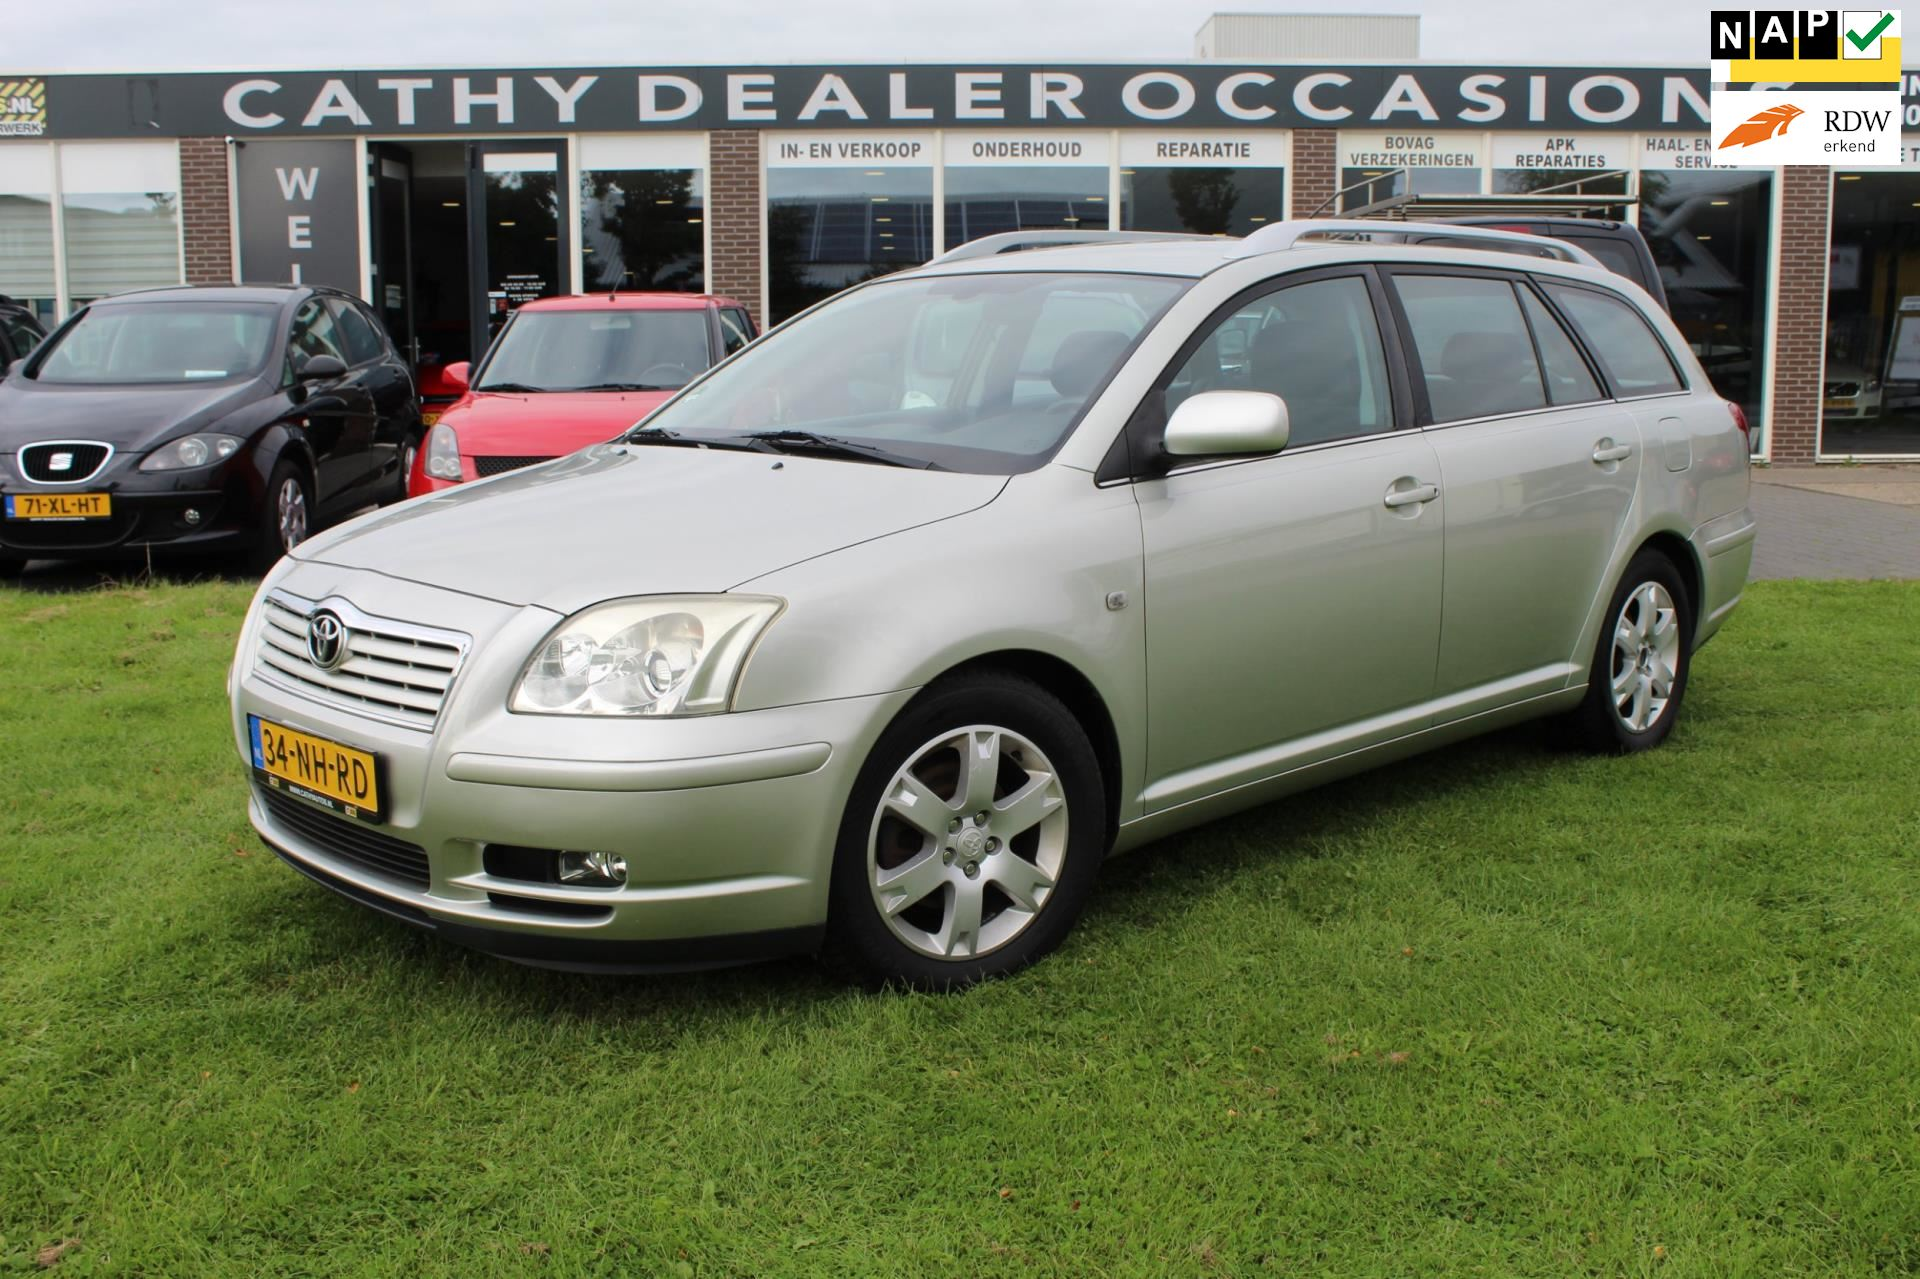 Toyota Avensis Wagon occasion - Cathy Dealer Occasions